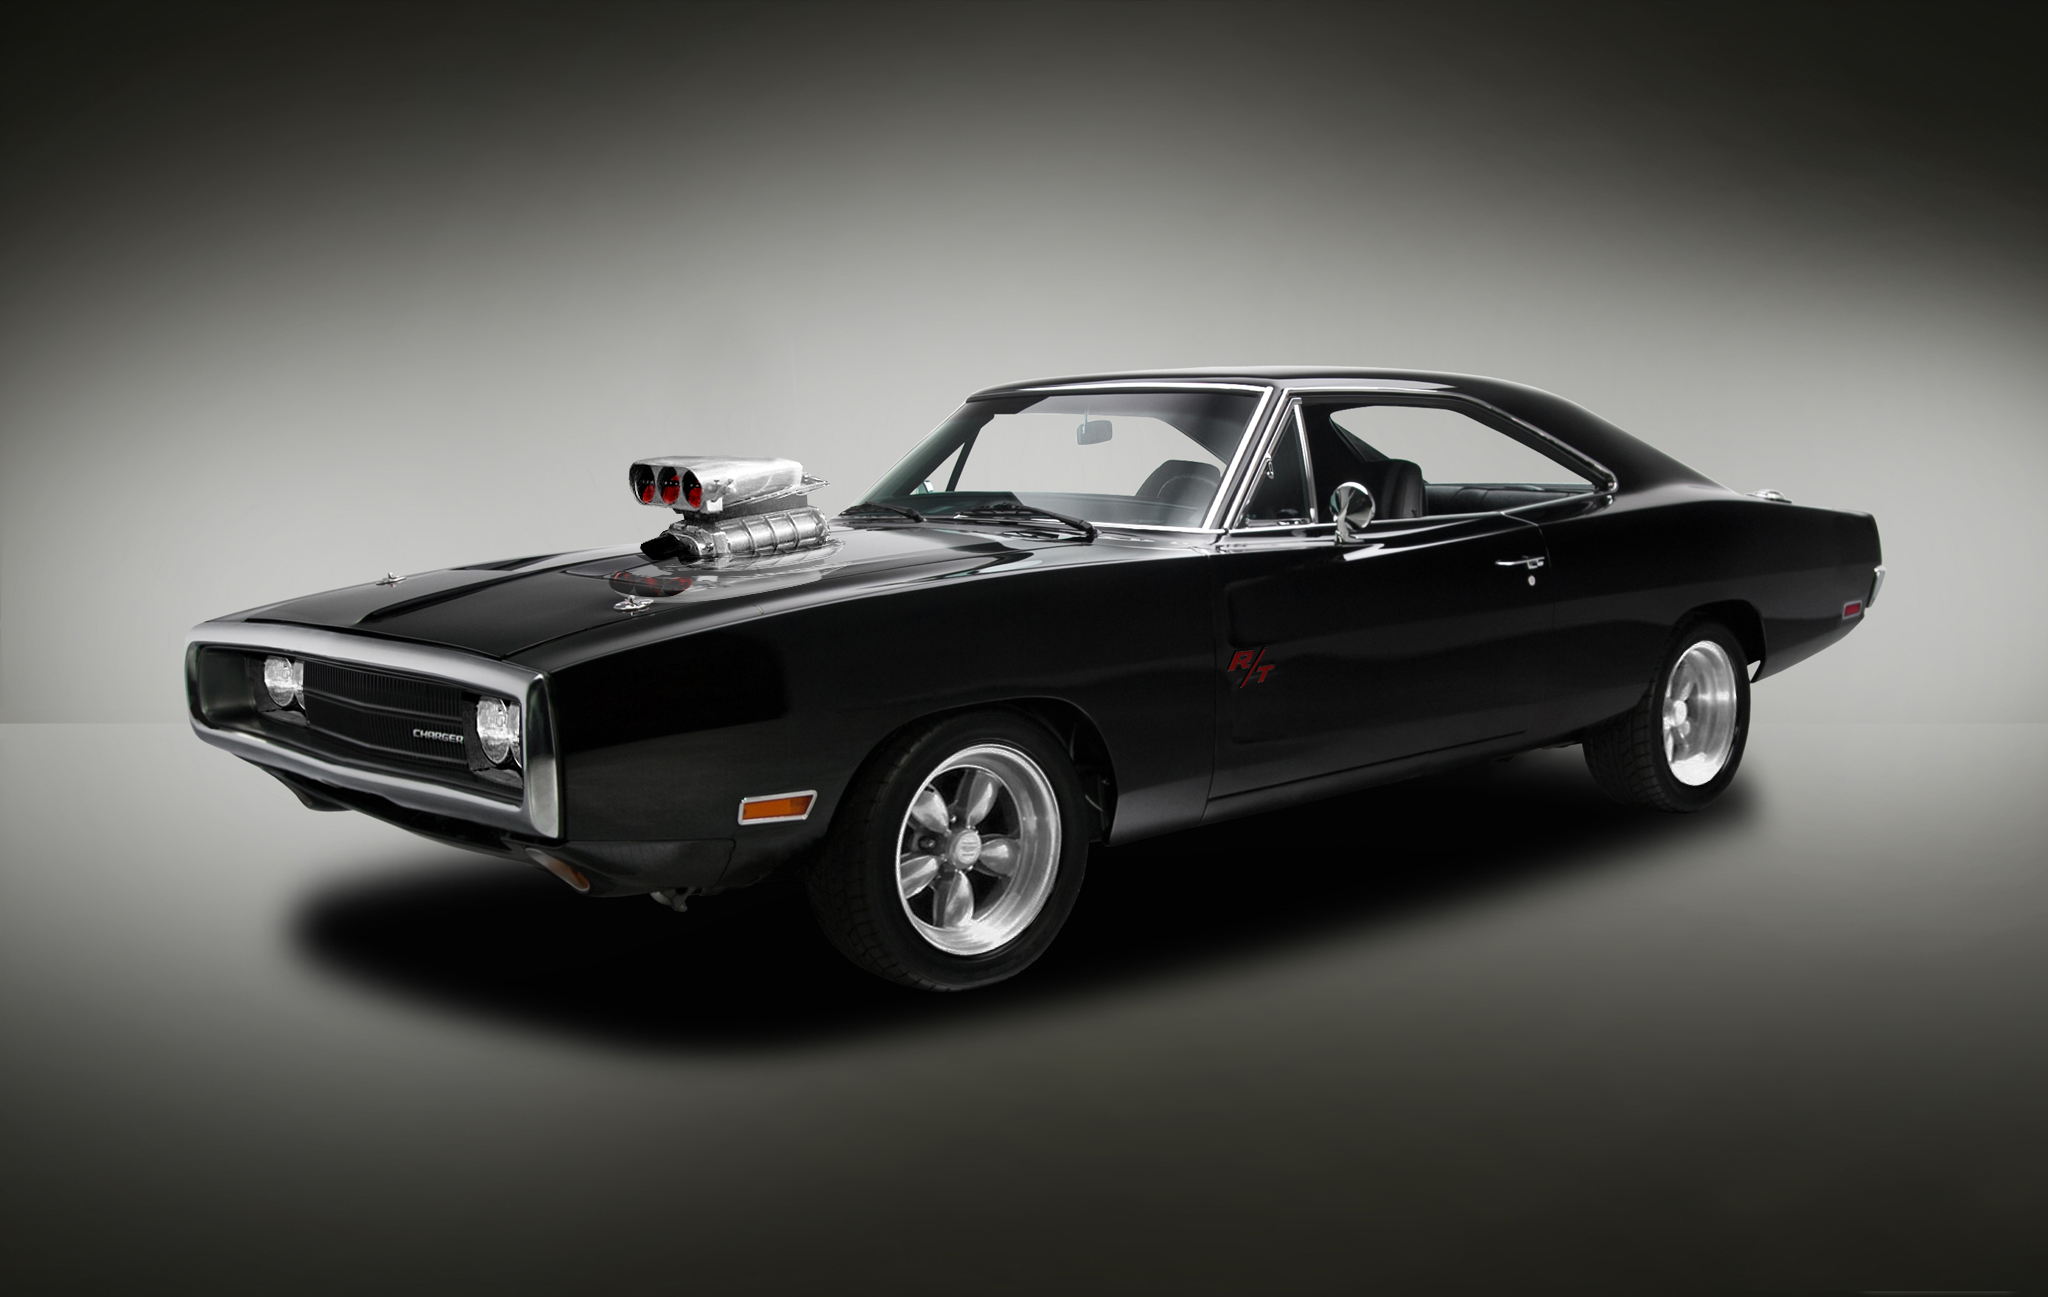 1970 - dodge charger rt4wheelssociety on deviantart